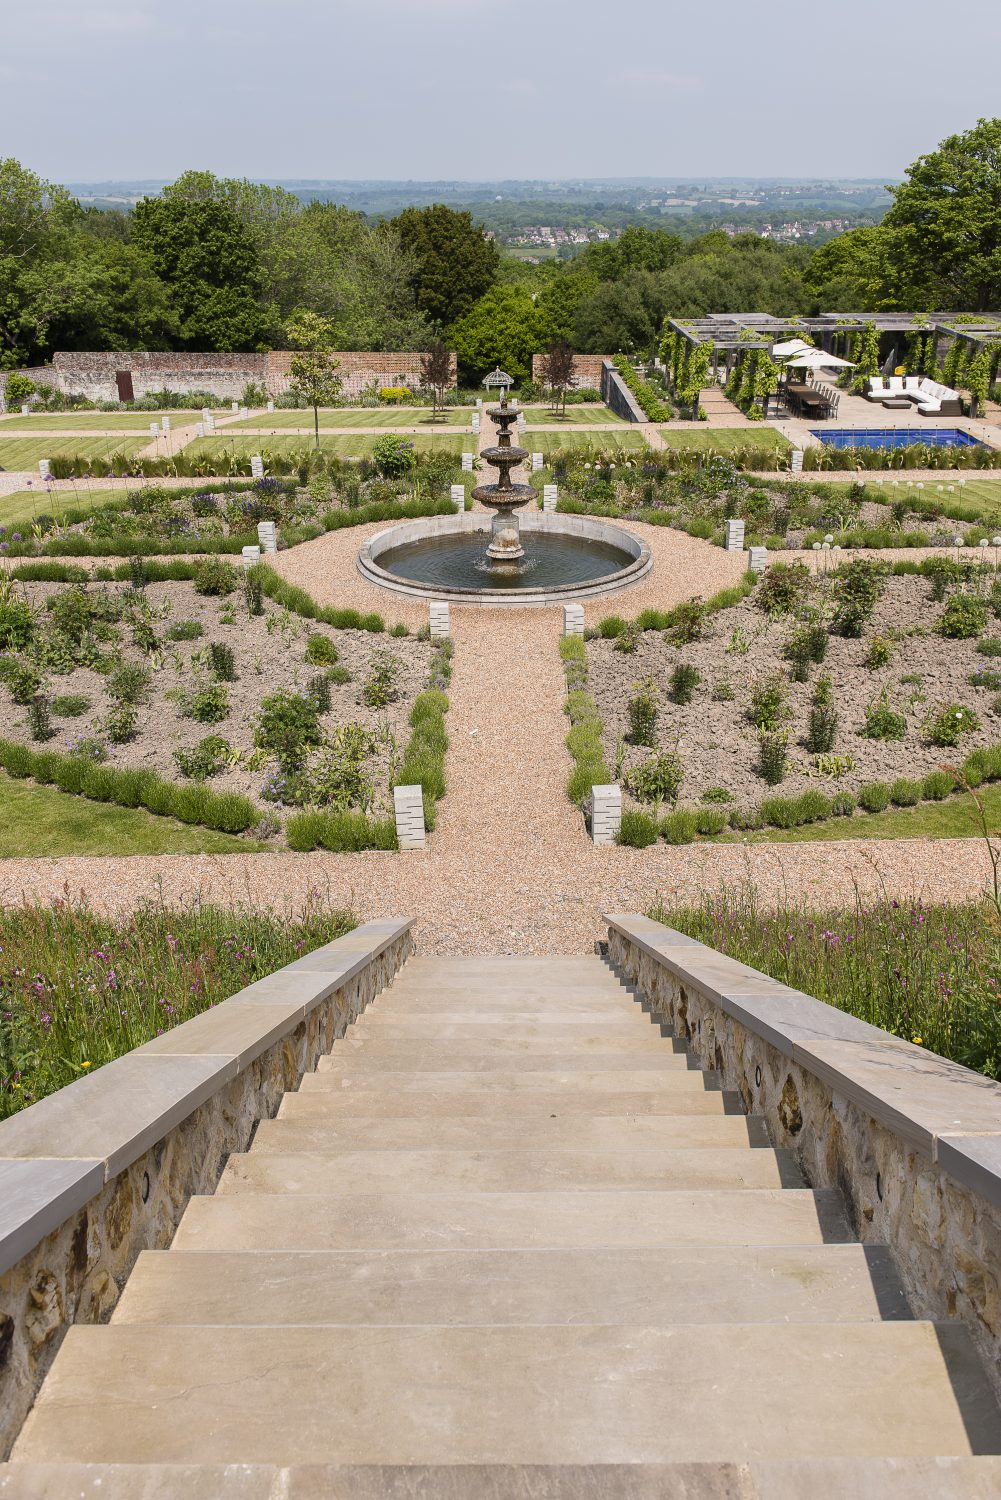 Chris designed the main part of the garden on a formal scheme, with gravel paths dividing the beds around the fountain